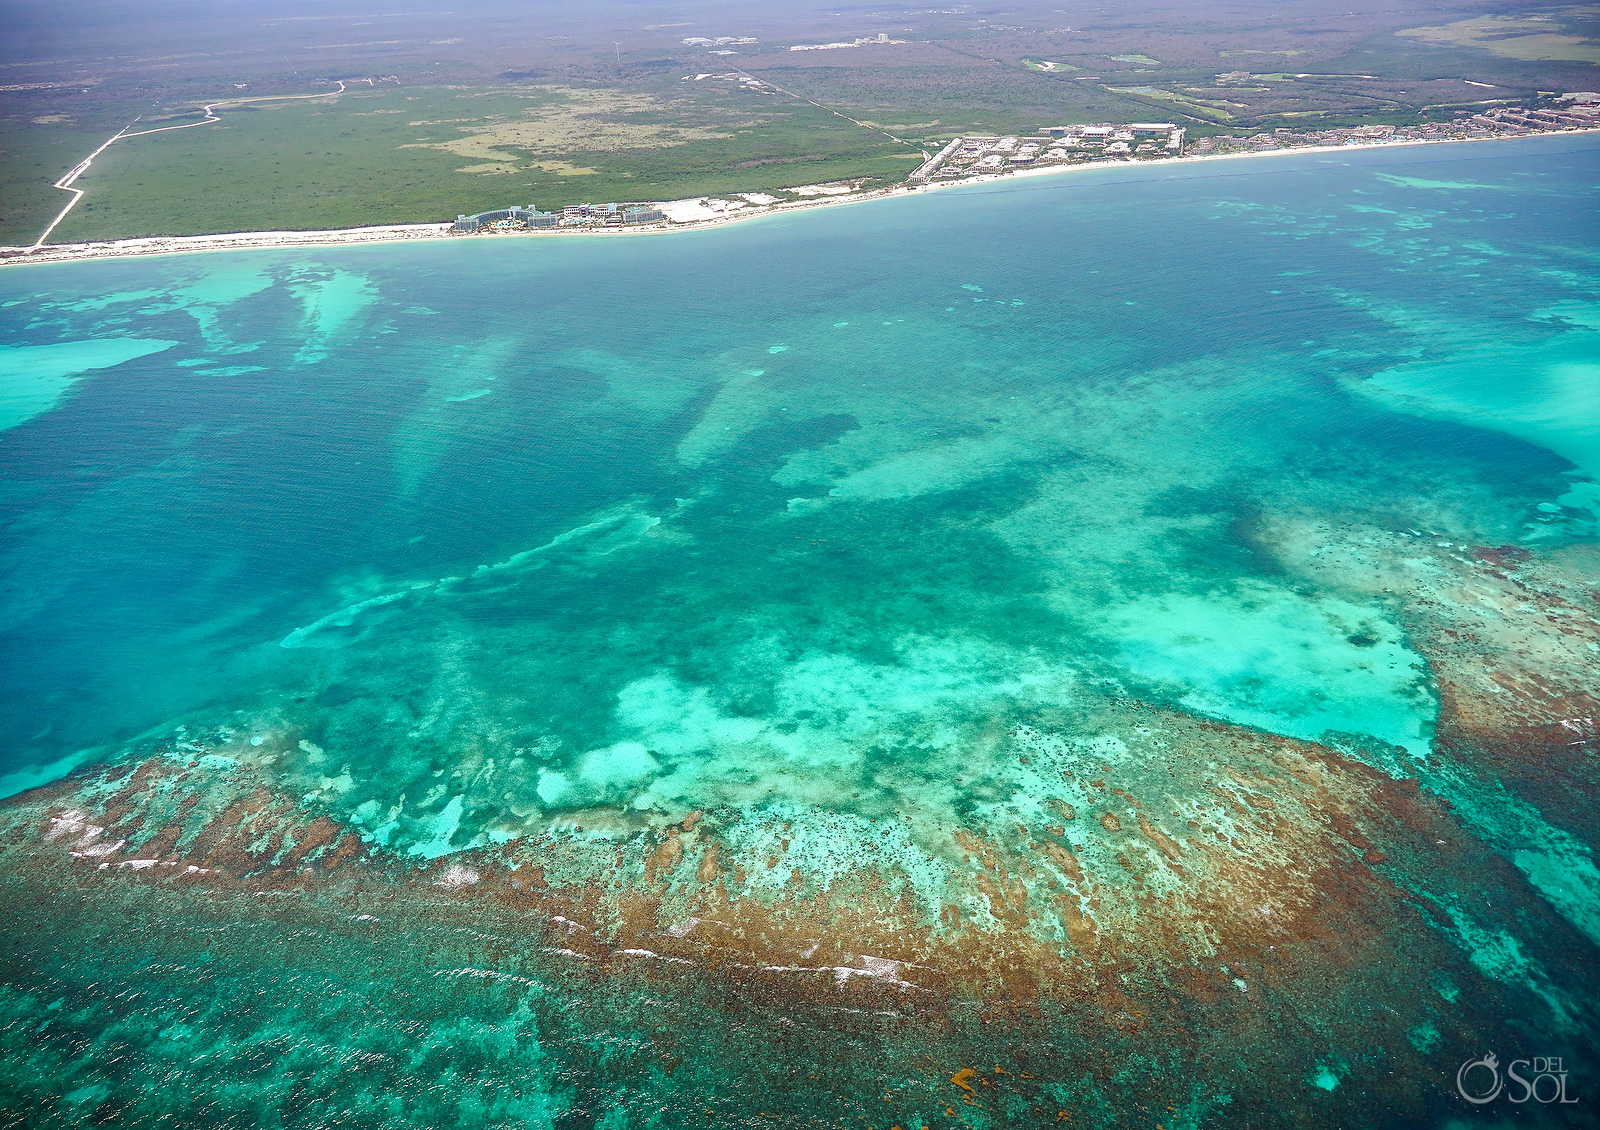 Mesoamerica reef Cancun area aerial photography tour